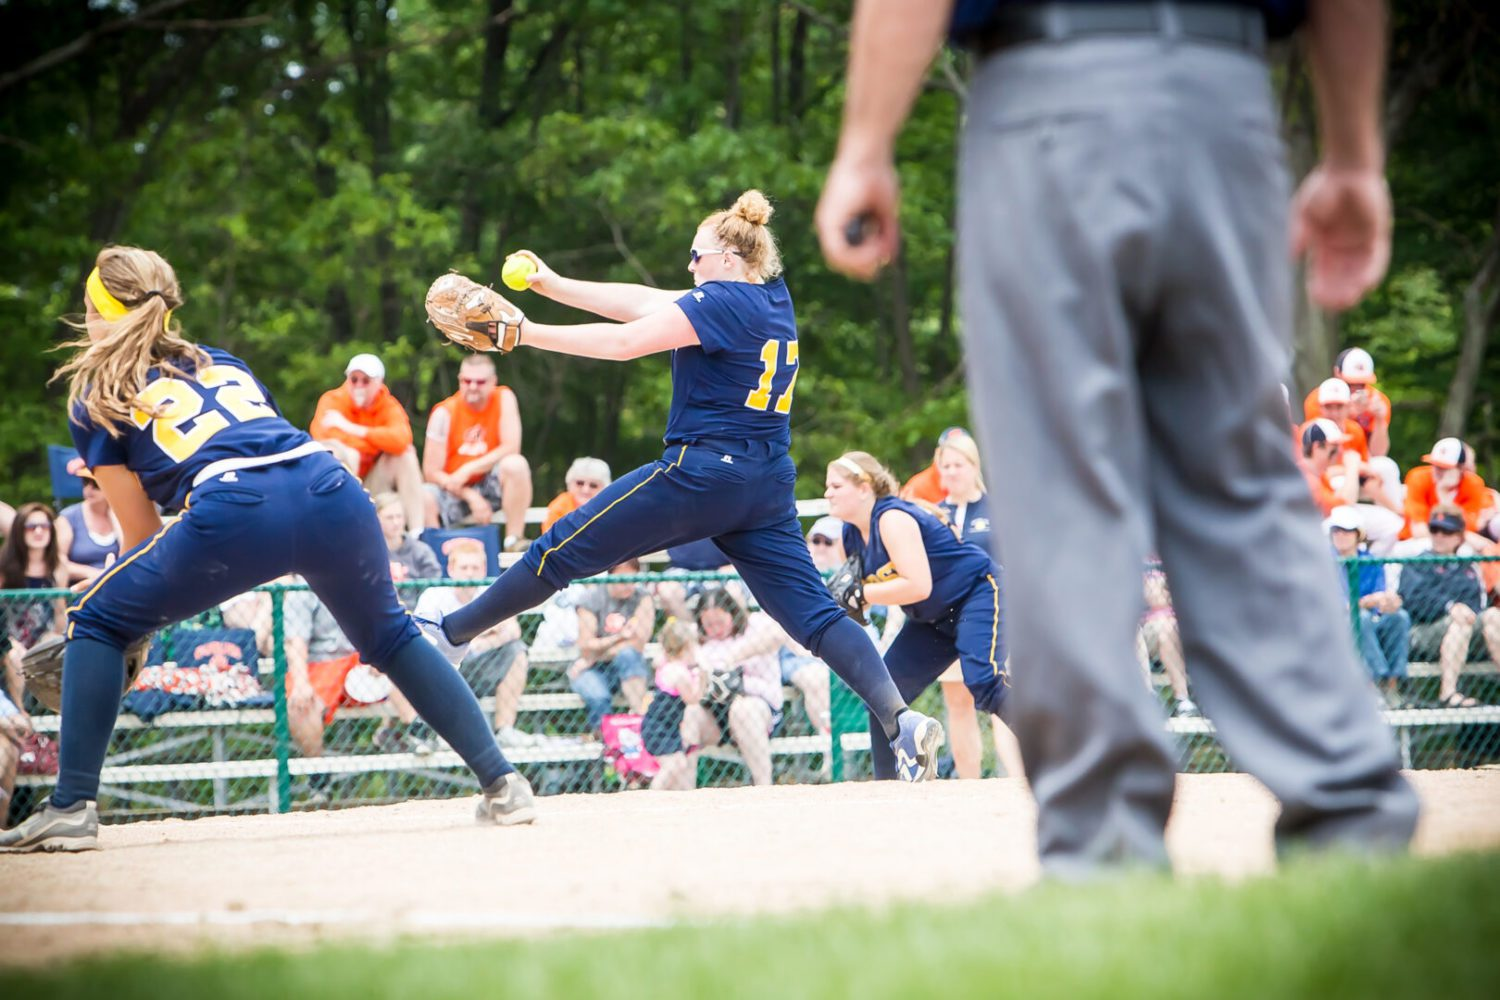 Softball roundup 4/17: Grand Haven takes two wins from North Muskegon; Mona Shores and Fremont both register victories, Holton rolls